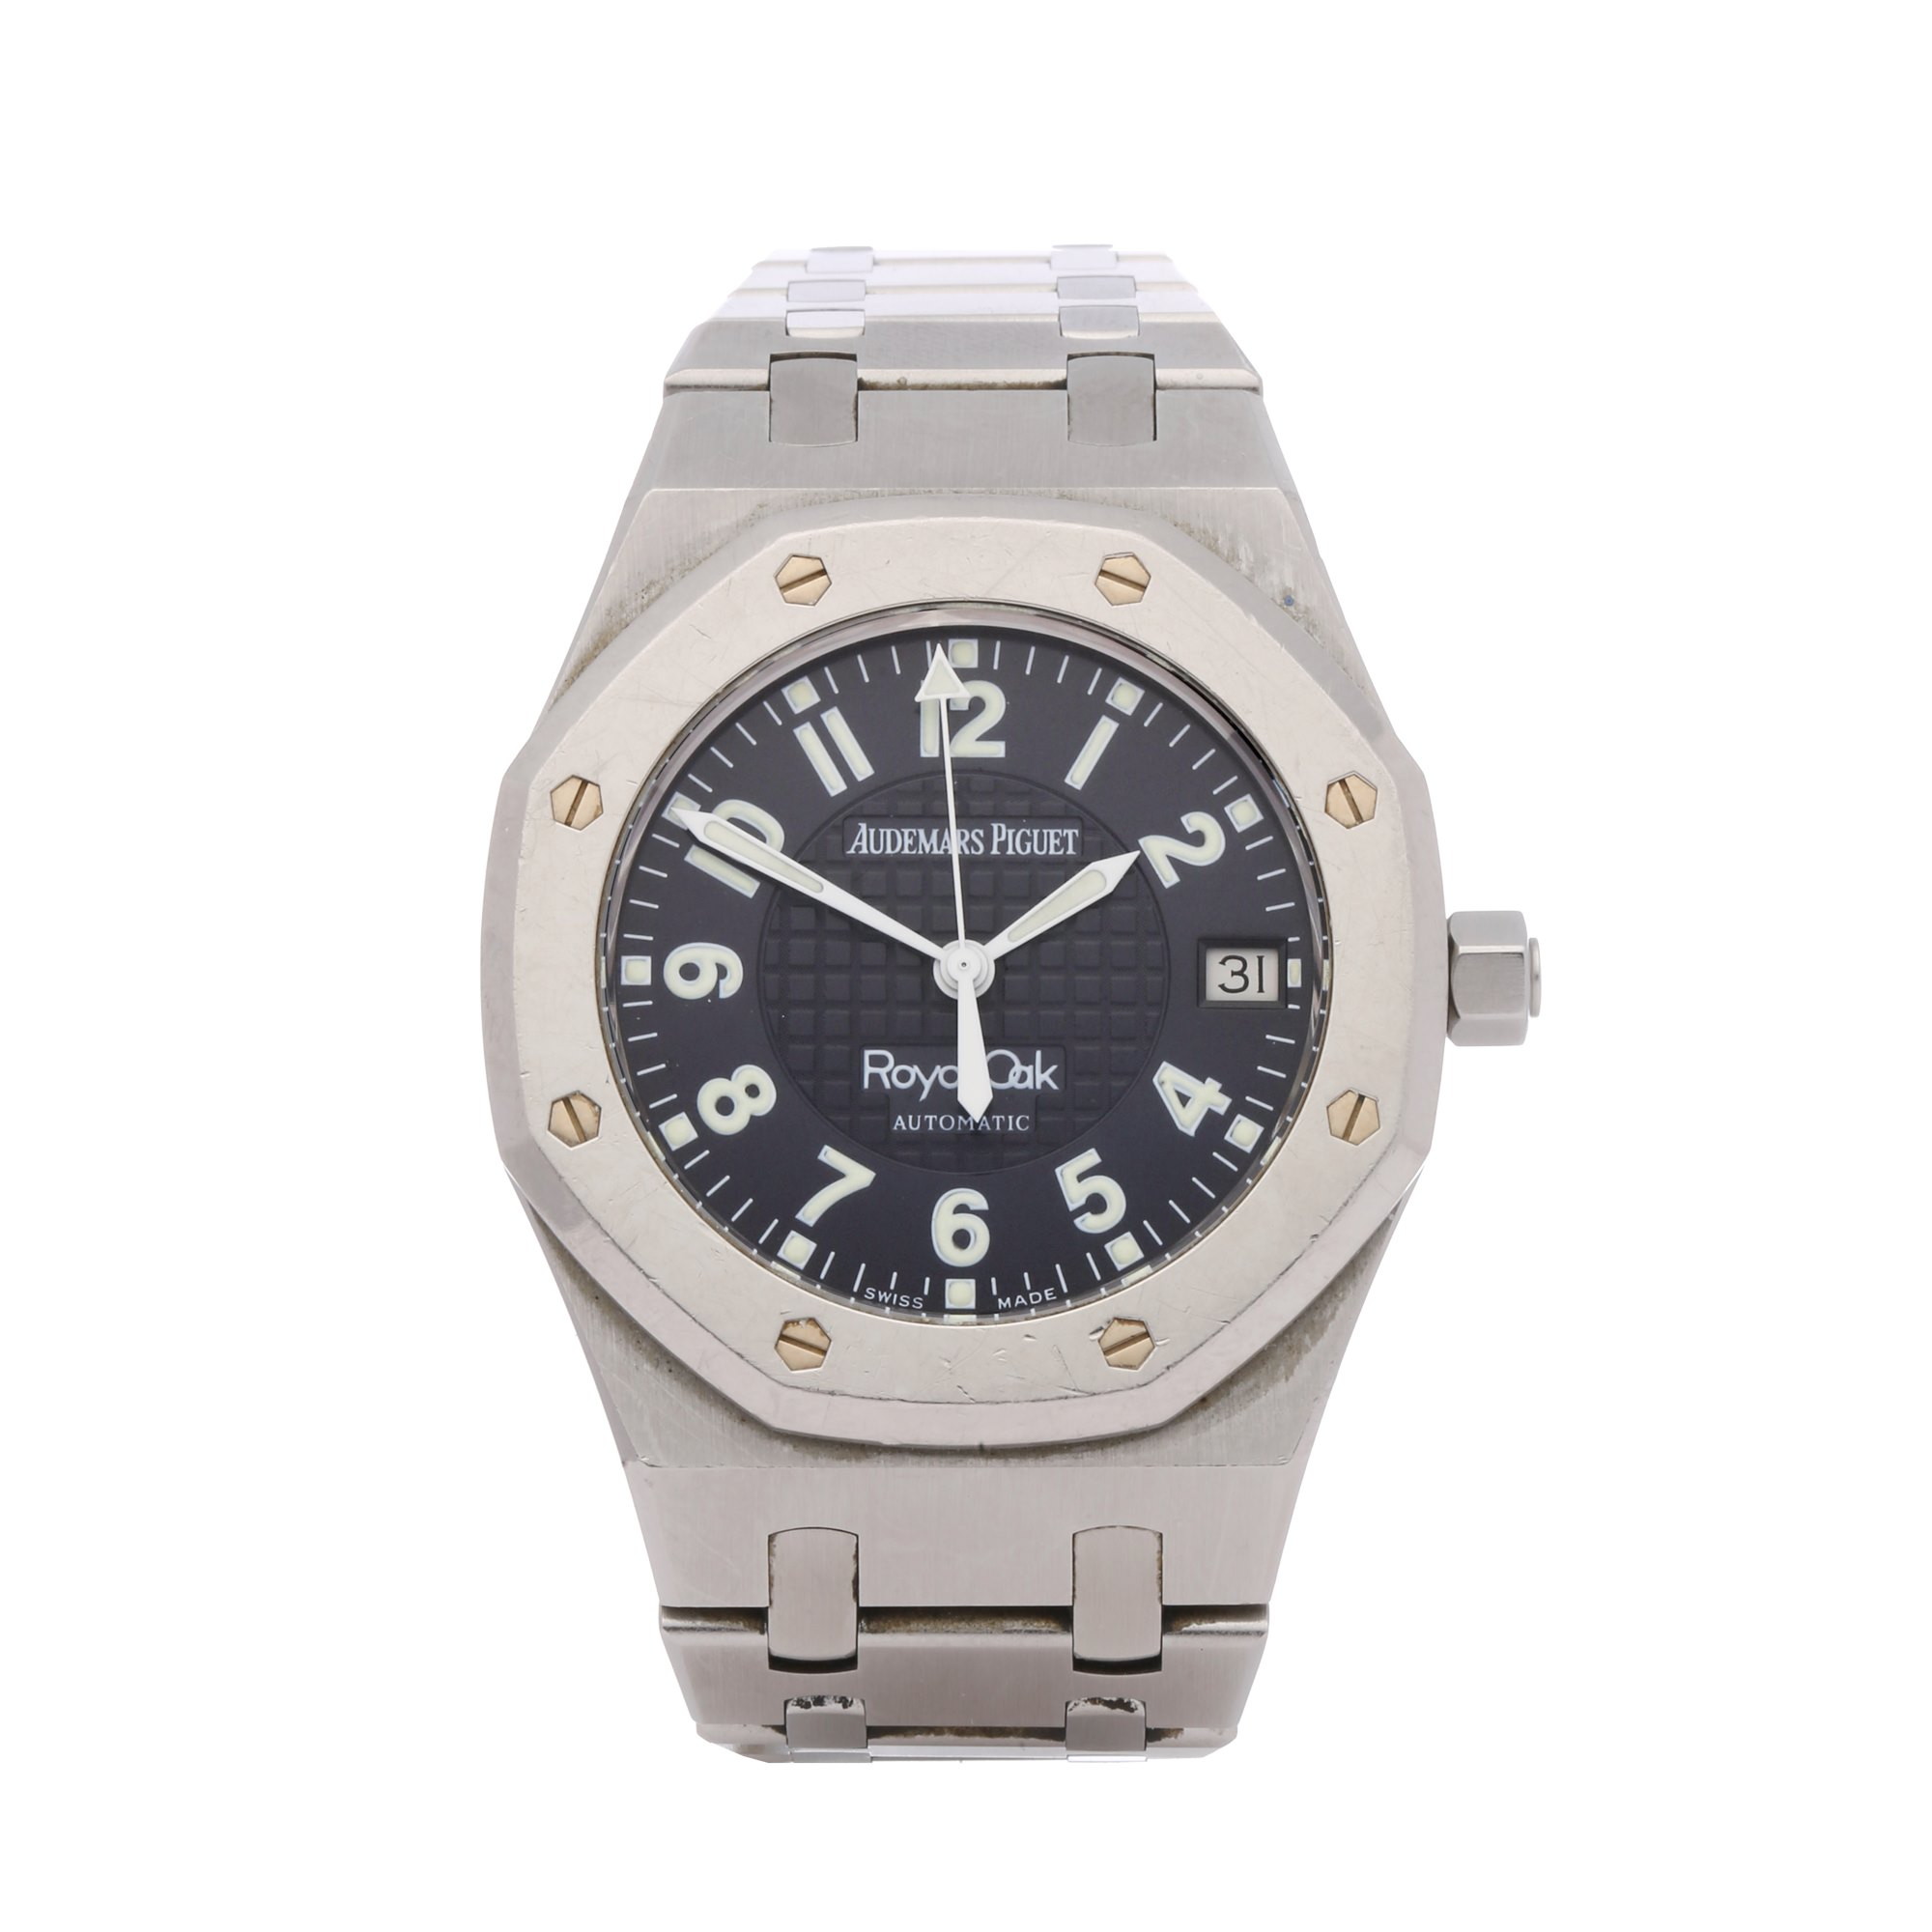 Audemars Piguet Royal Oak Nick Faldo Ltd Ed & Golf Clubs Platinum & Stainless Steel - 15190SP.OO.0789ST Platinum & Stainless Steel 15190SP.OO.0789ST